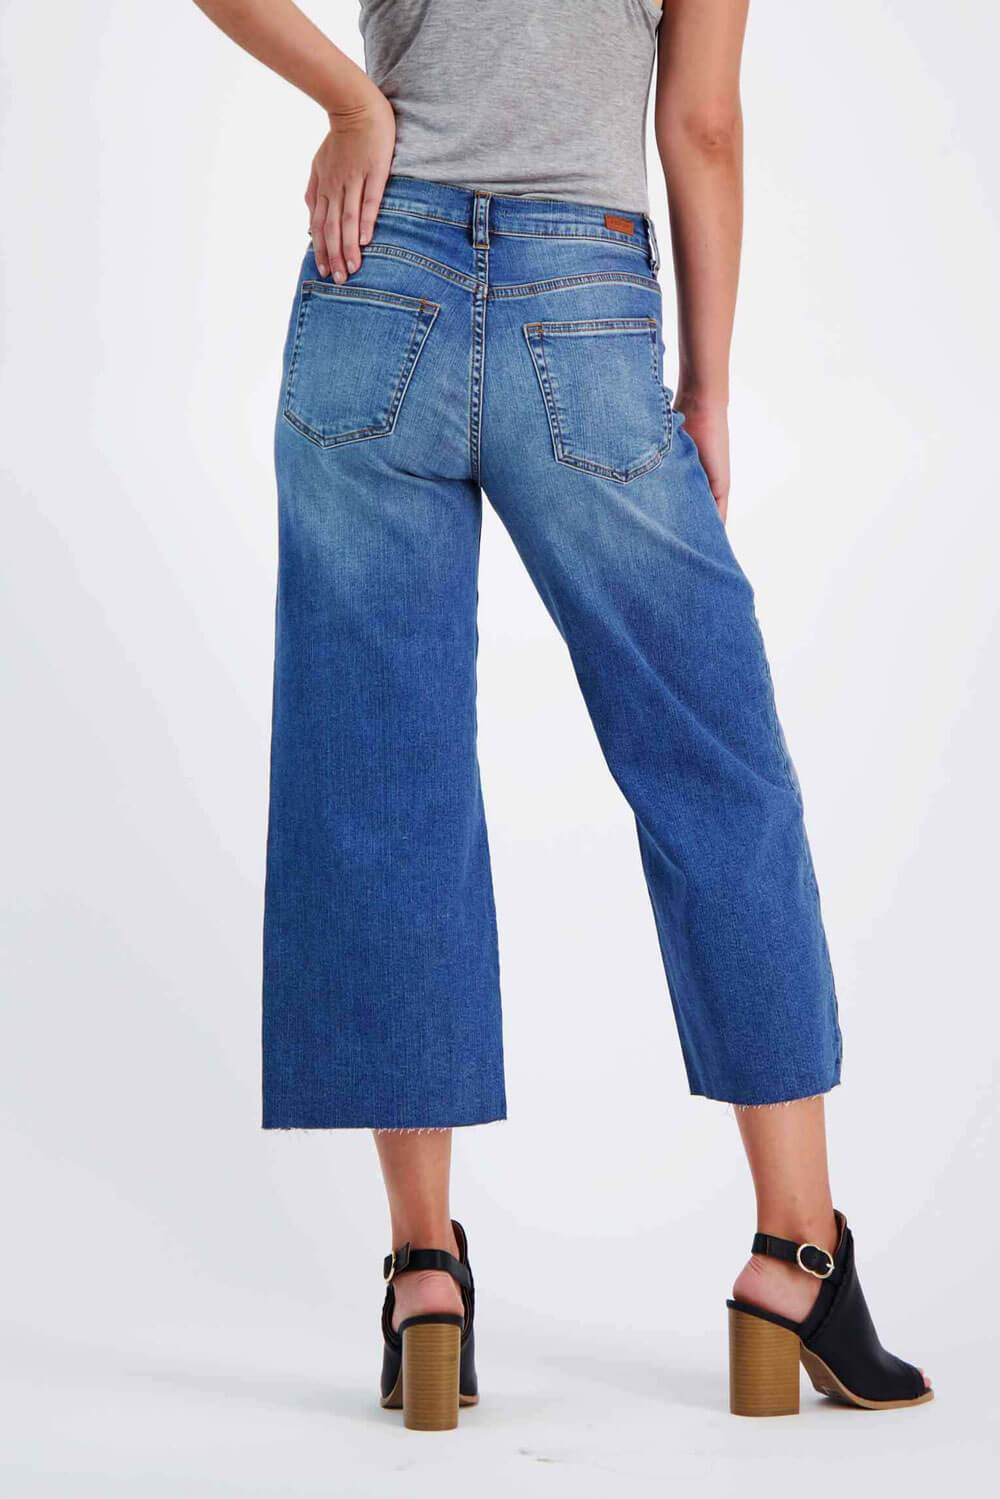 Wide Leg Crop Jeans blue -MILK MONEY